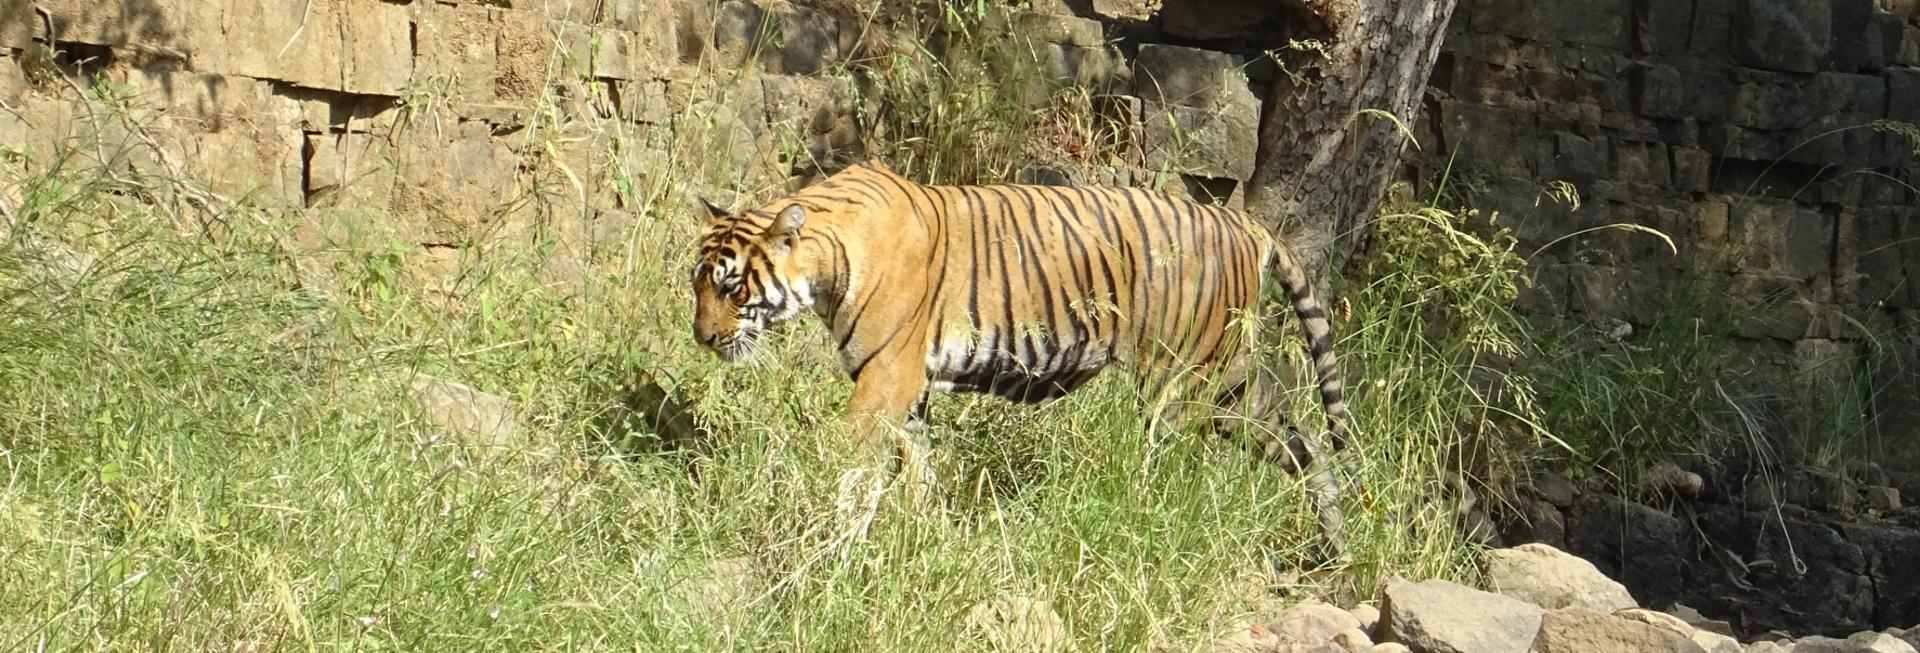 Tiger in long grass, Ranthambore National Park